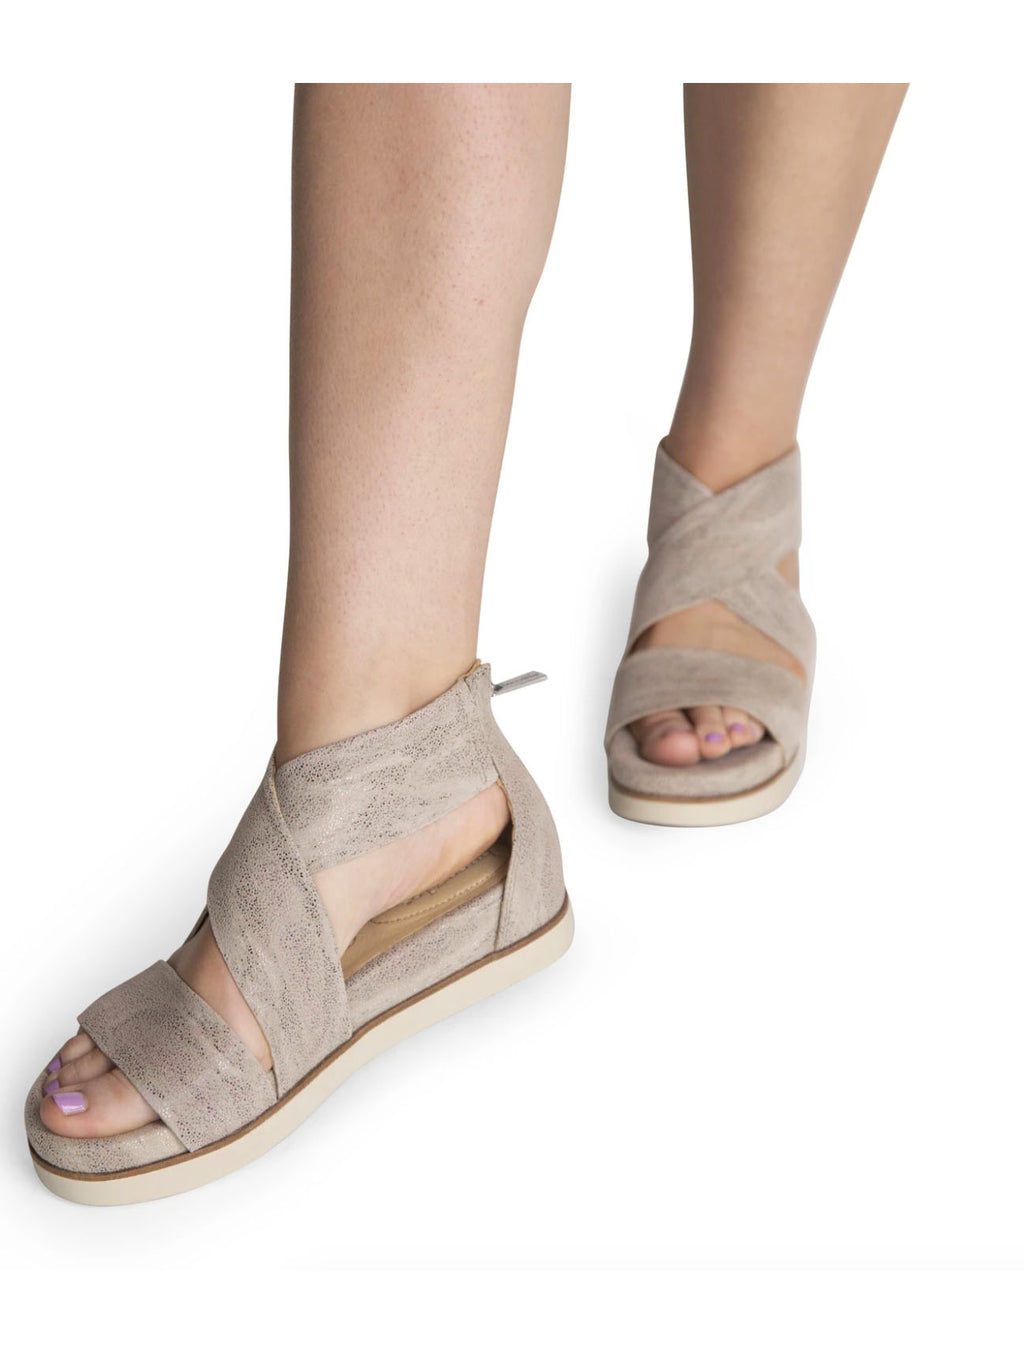 Bussola Phebe Sandal in Doeskin